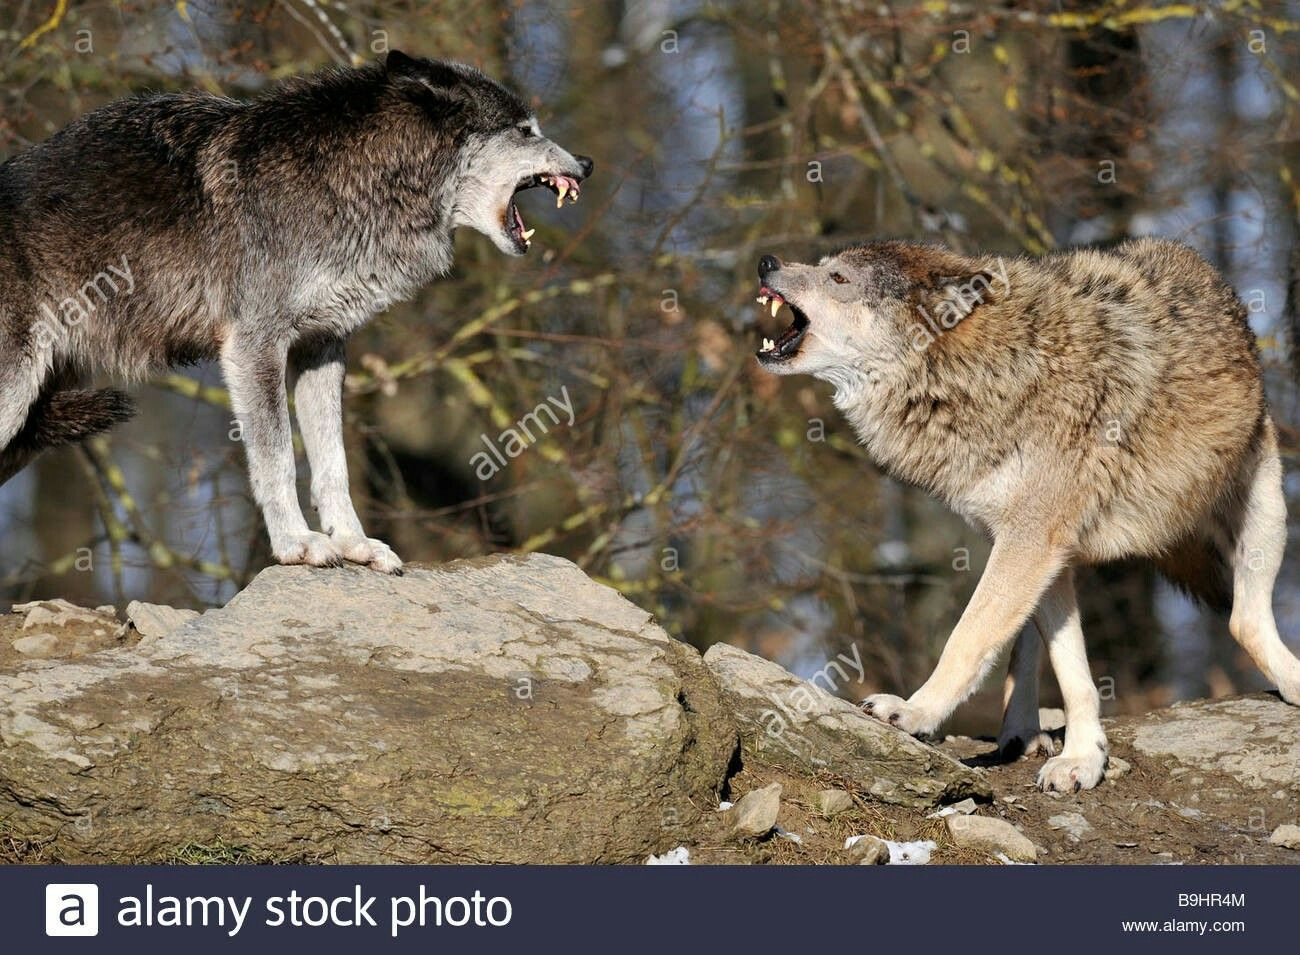 Pin by Alan on Wolves Reveal The Heart Wolves fighting, Wolf